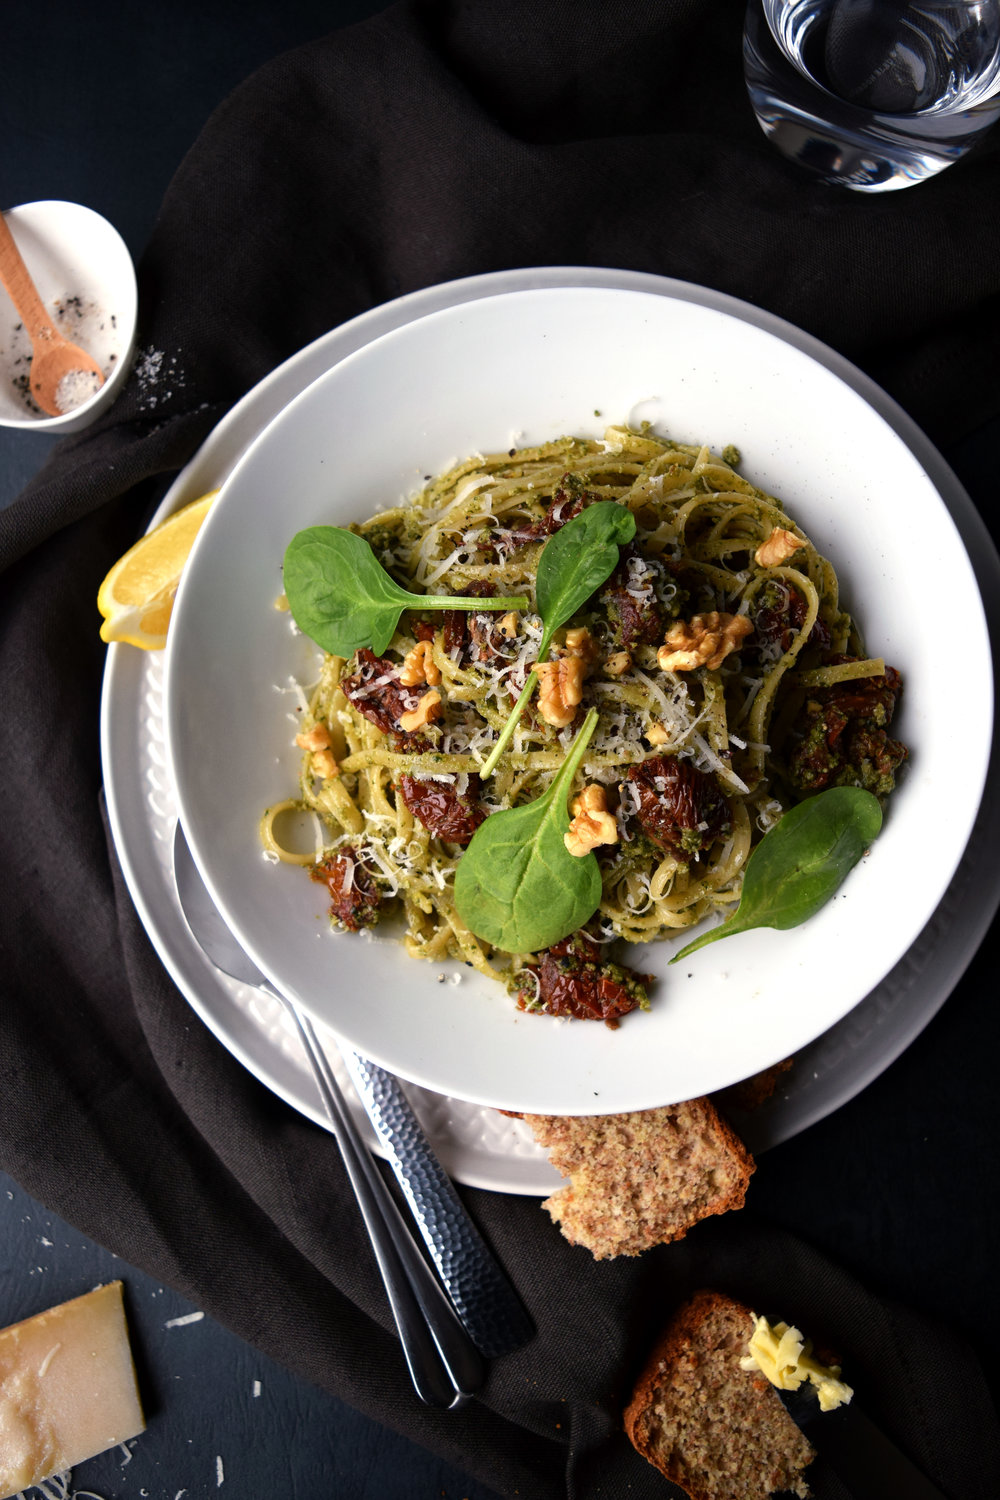 Spaghetti with spinach and walnut pesto.